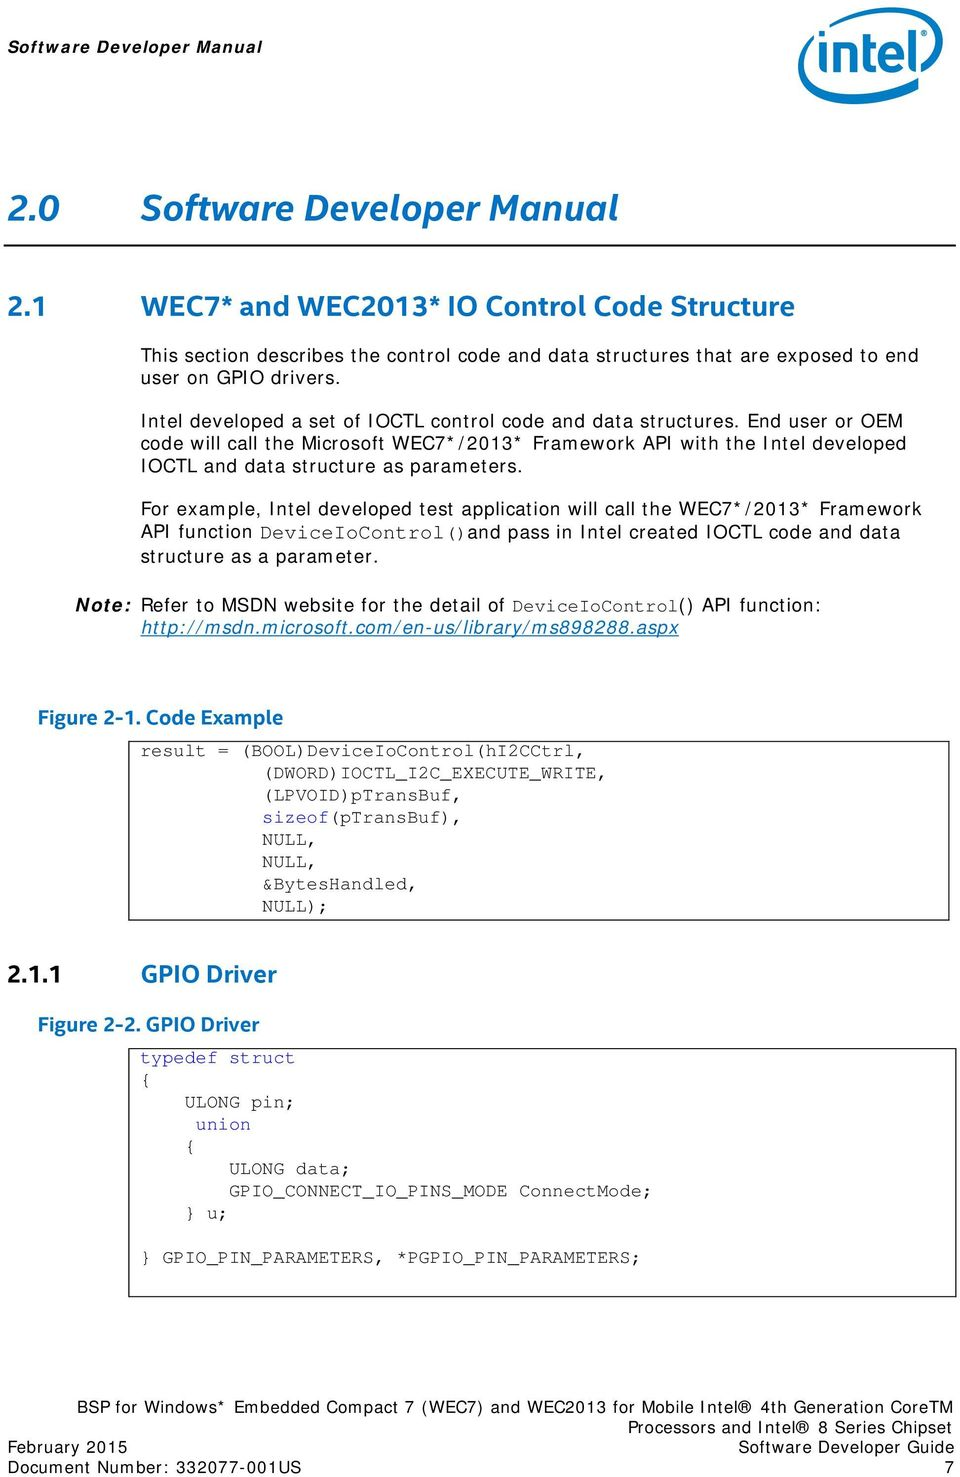 Intel developed a set of IOCTL control code and data structures. End user or OEM code will call the Microsoft WEC7*/2013* Framework API with the Intel developed IOCTL and data structure as parameters.